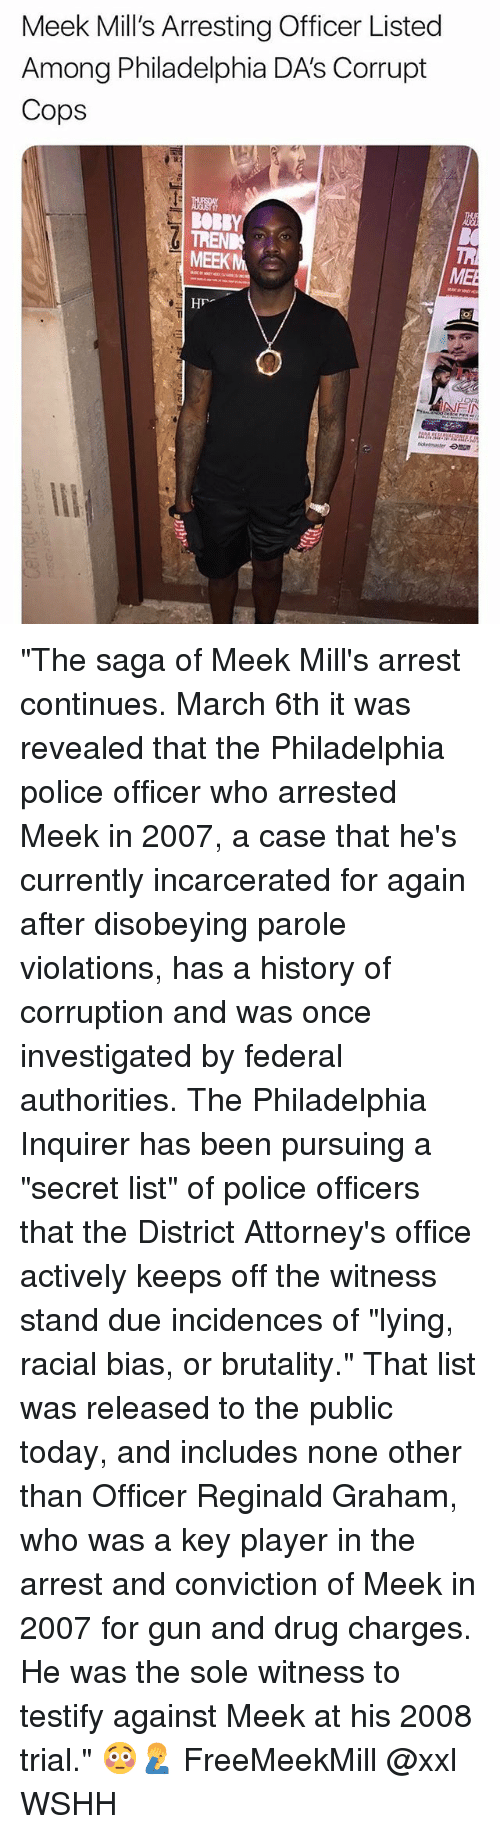 "attorneys: Meek Mill's Arresting Officer Listed  Among Philadelphia DA'S Corrupt  Cops  Tio  OBRY  MEEKM) :  ME ""The saga of Meek Mill's arrest continues. March 6th it was revealed that the Philadelphia police officer who arrested Meek in 2007, a case that he's currently incarcerated for again after disobeying parole violations, has a history of corruption and was once investigated by federal authorities. The Philadelphia Inquirer has been pursuing a ""secret list"" of police officers that the District Attorney's office actively keeps off the witness stand due incidences of ""lying, racial bias, or brutality."" That list was released to the public today, and includes none other than Officer Reginald Graham, who was a key player in the arrest and conviction of Meek in 2007 for gun and drug charges. He was the sole witness to testify against Meek at his 2008 trial."" 😳🤦‍♂️ FreeMeekMill @xxl WSHH"